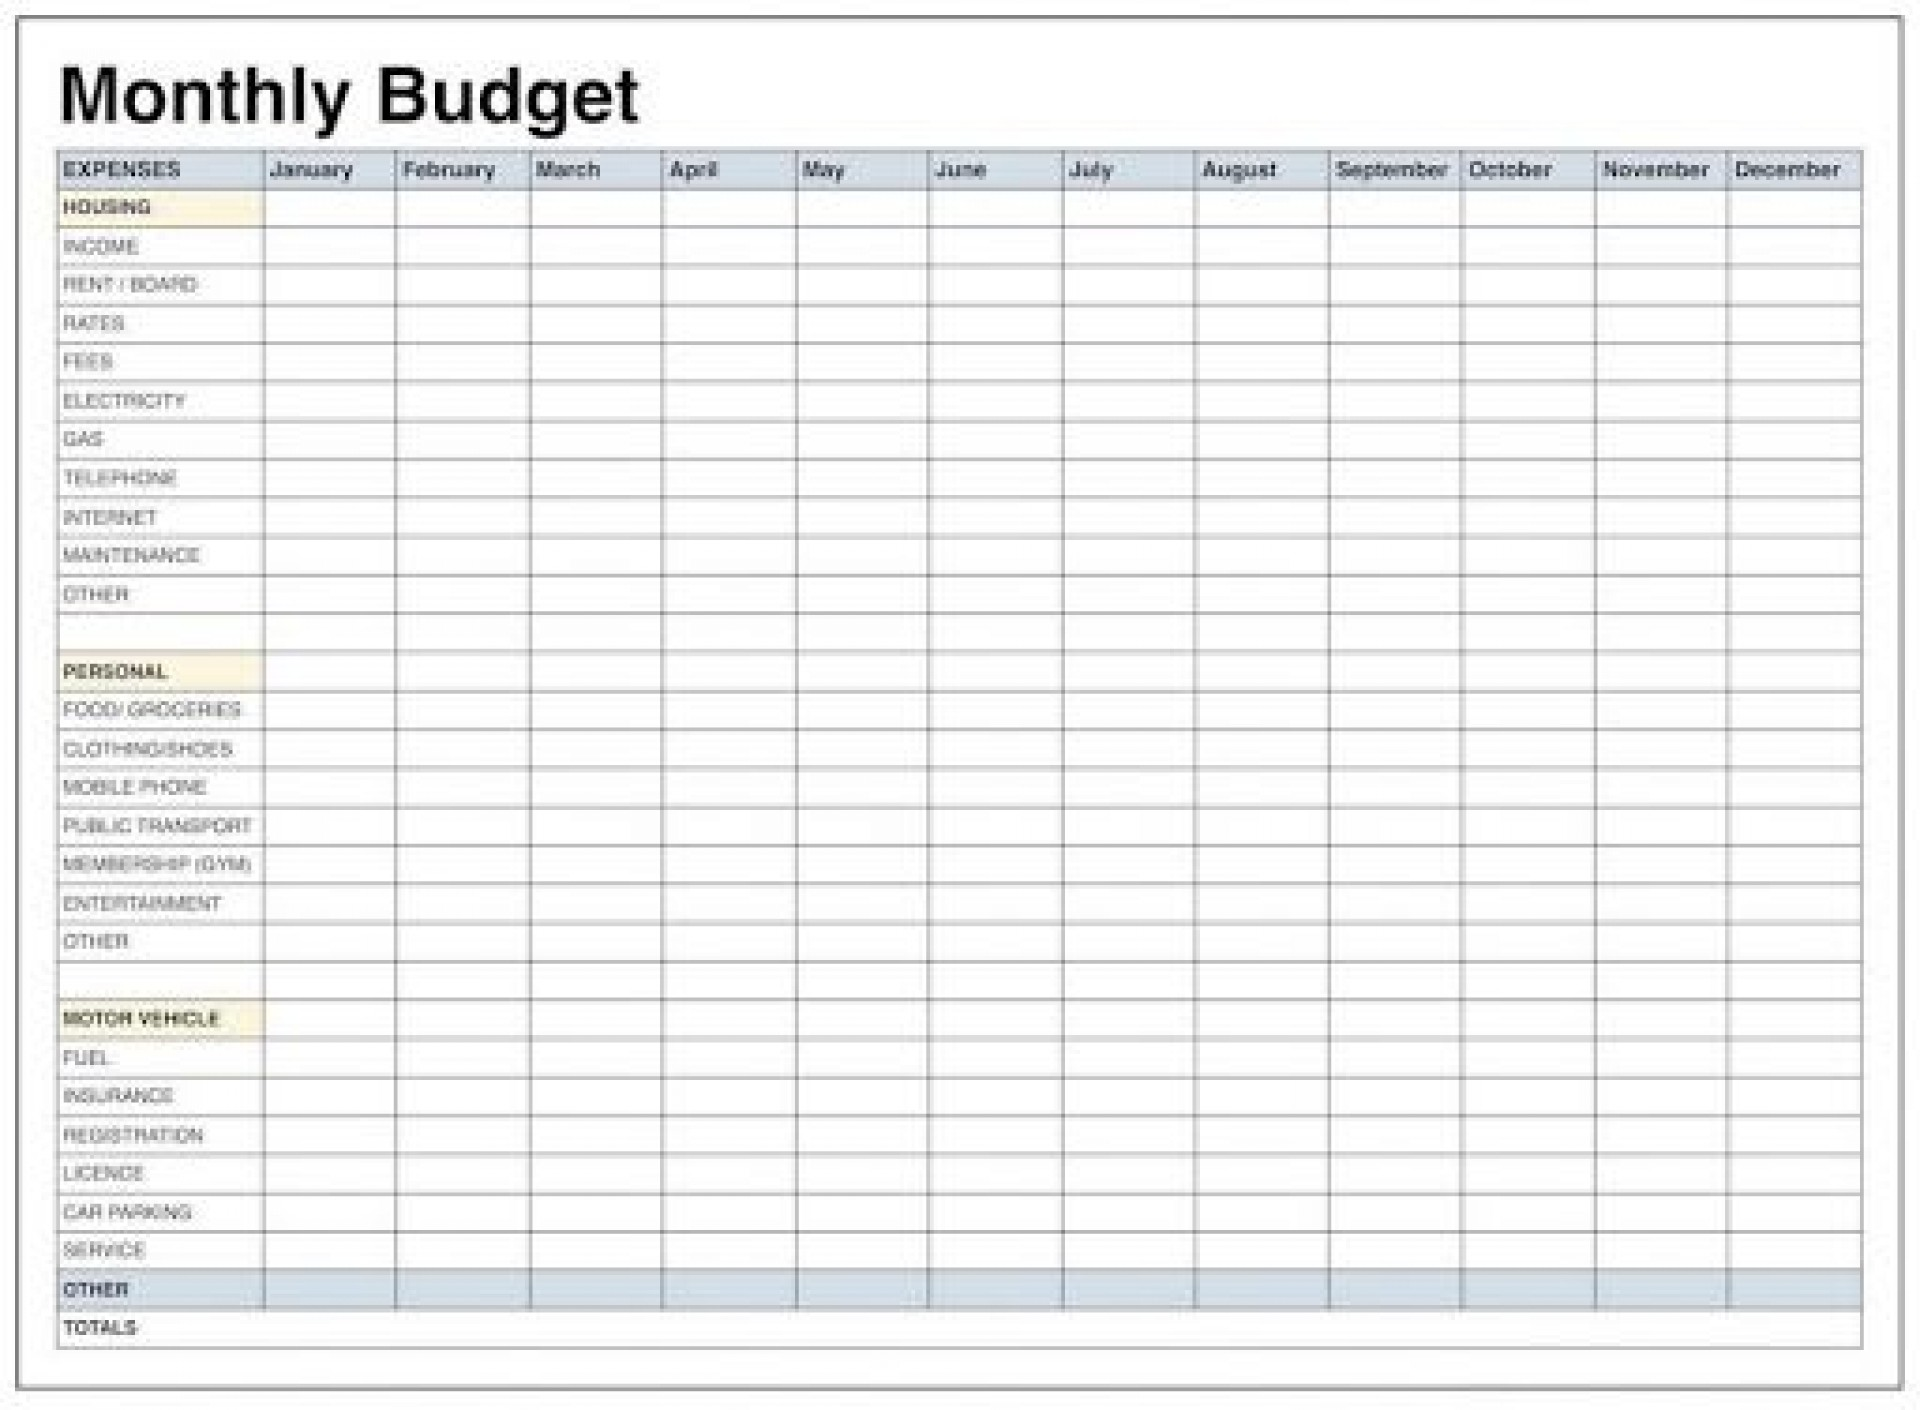 009 Remarkable Indian Monthly Budget Excel Spreadsheet Template High Def 1920